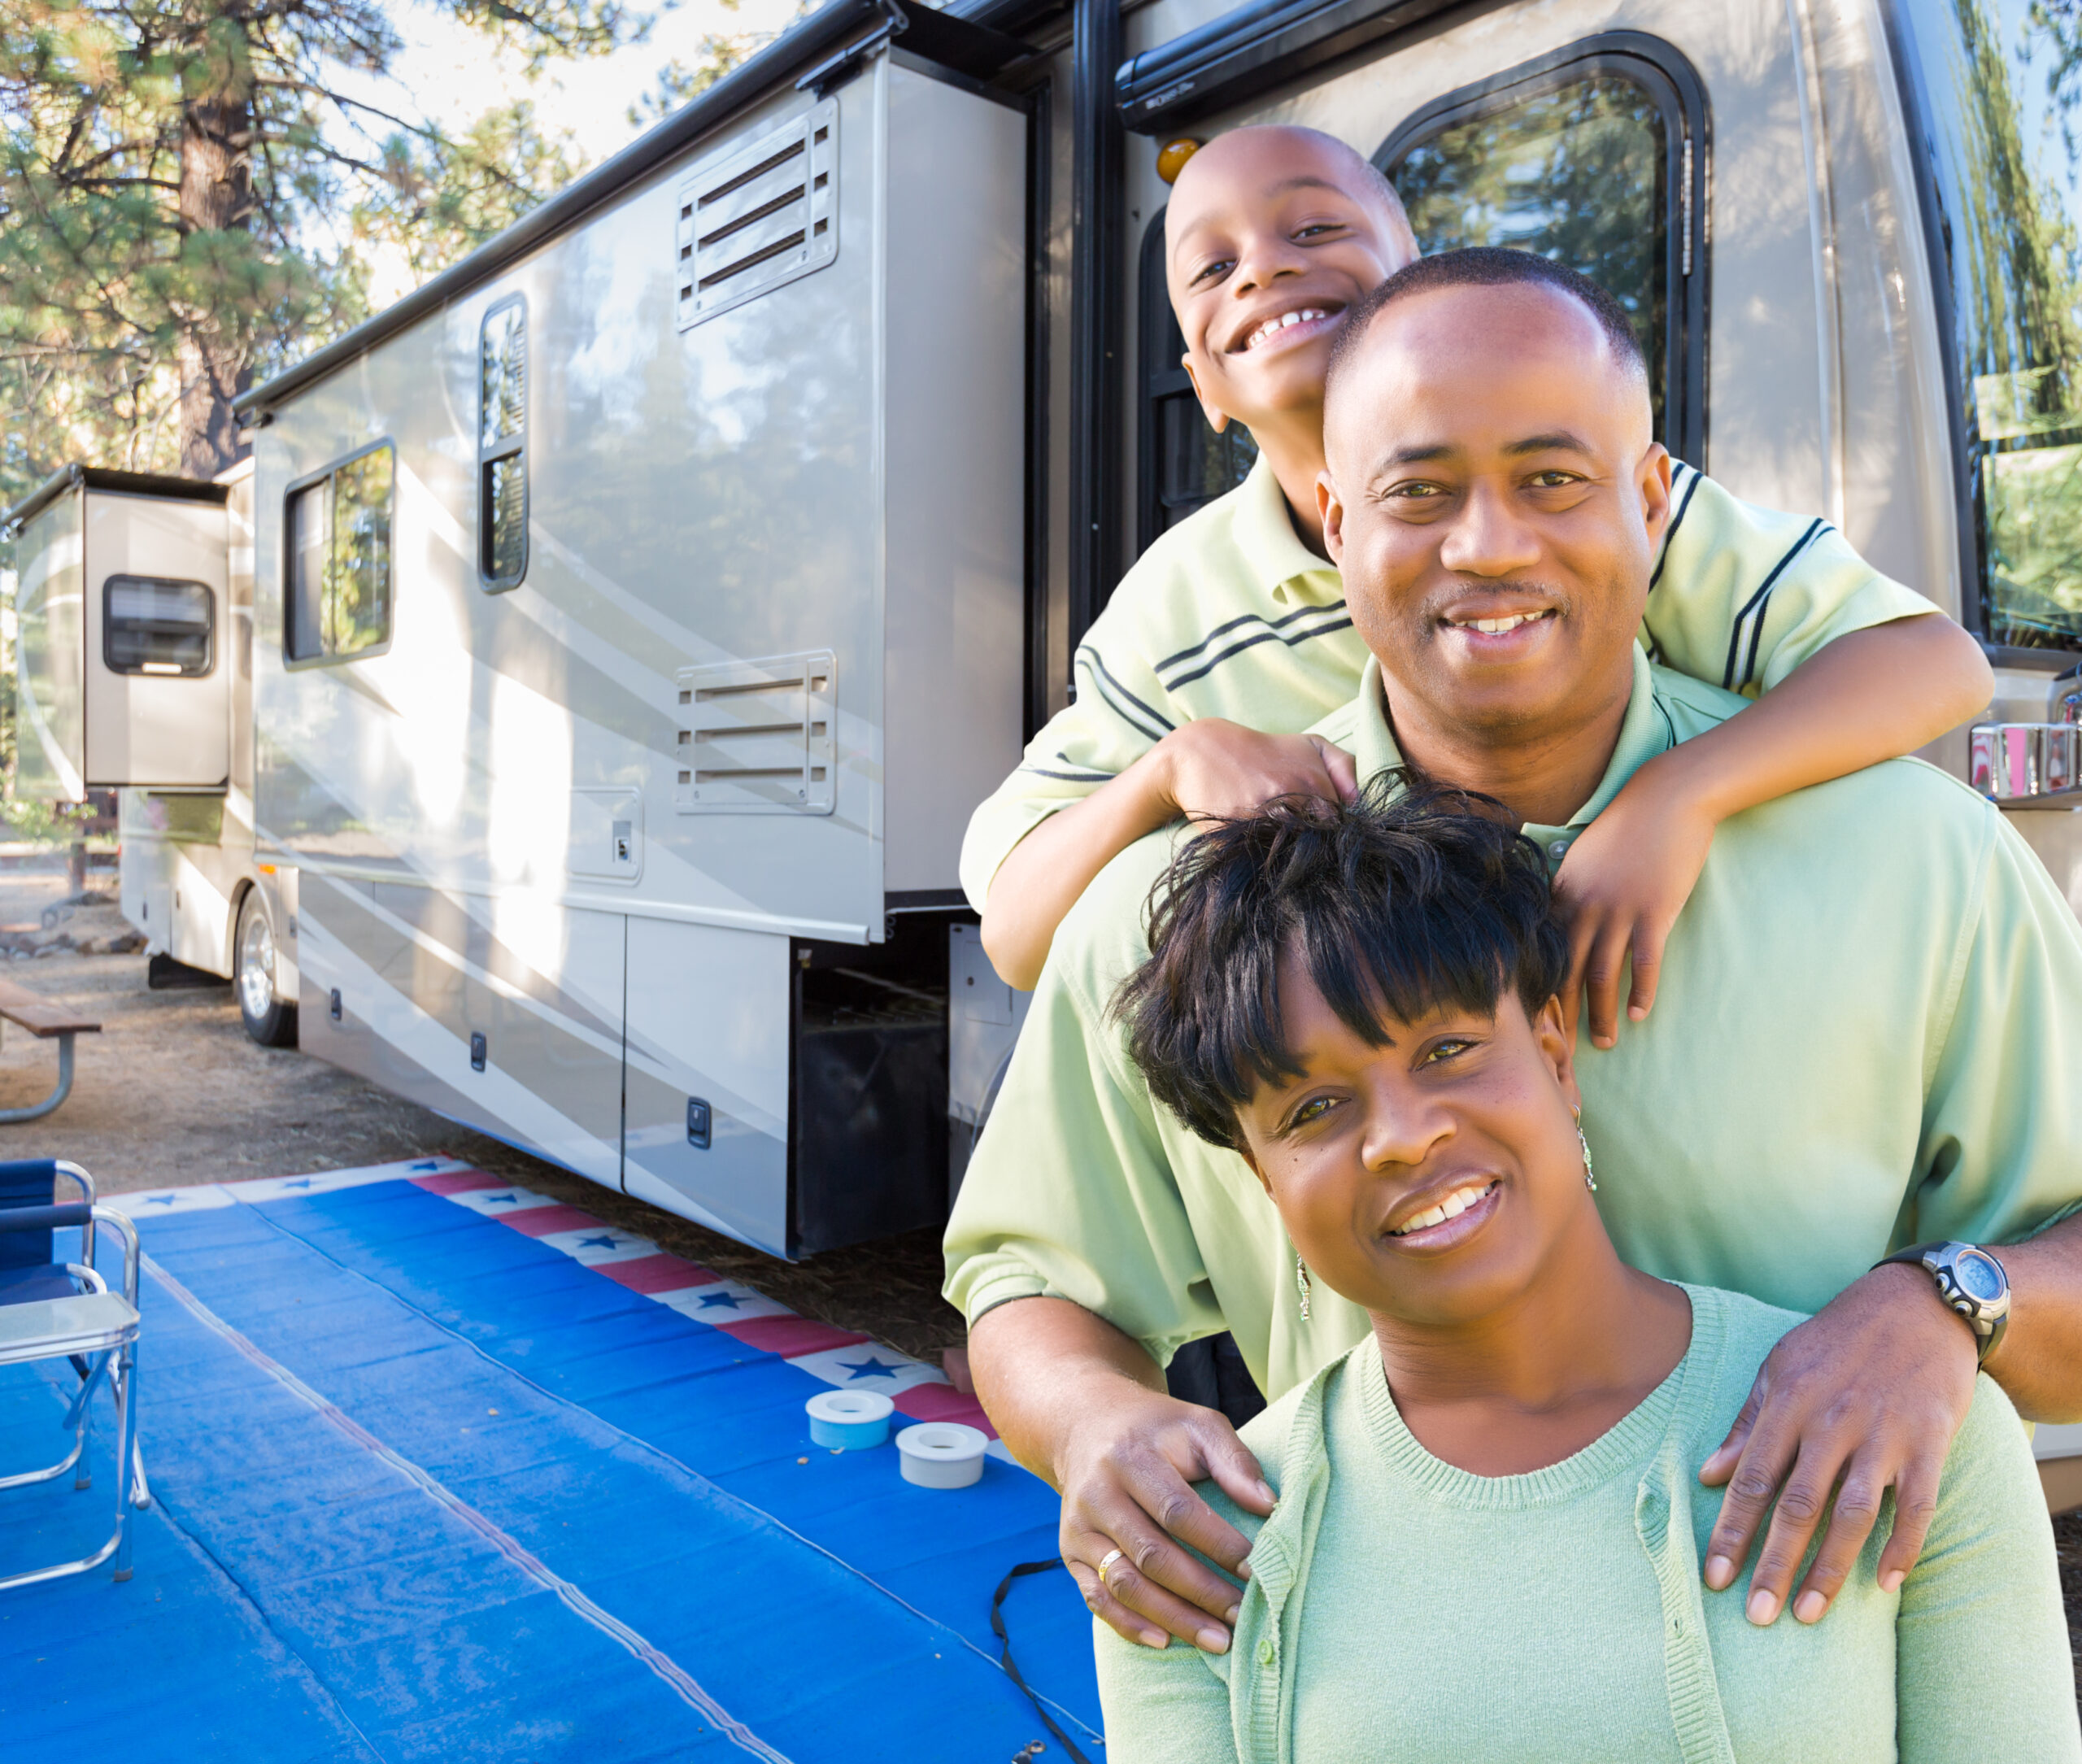 There are some great resources available to learn how to go RVing